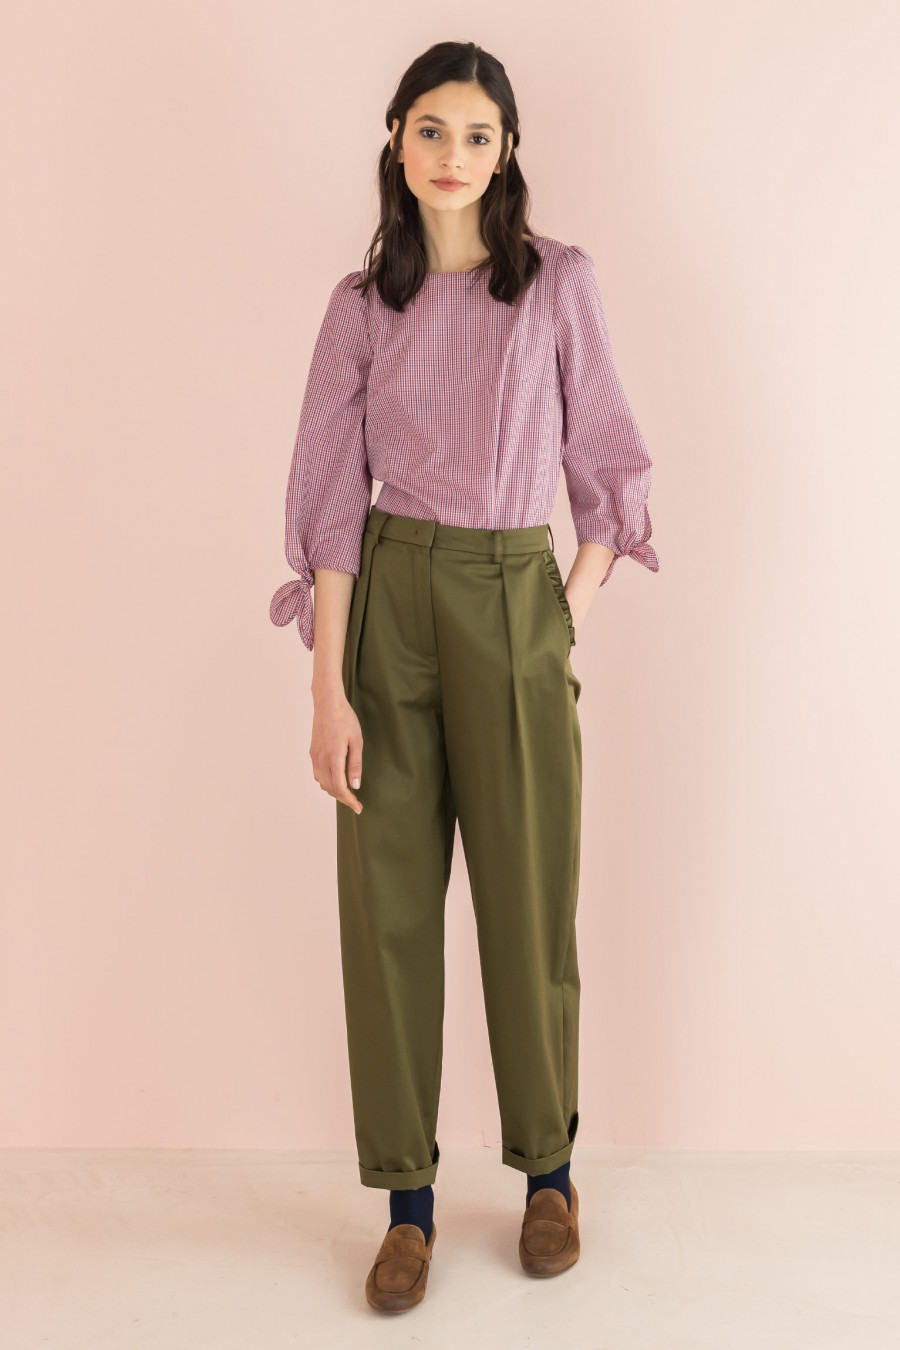 military-colored trousers